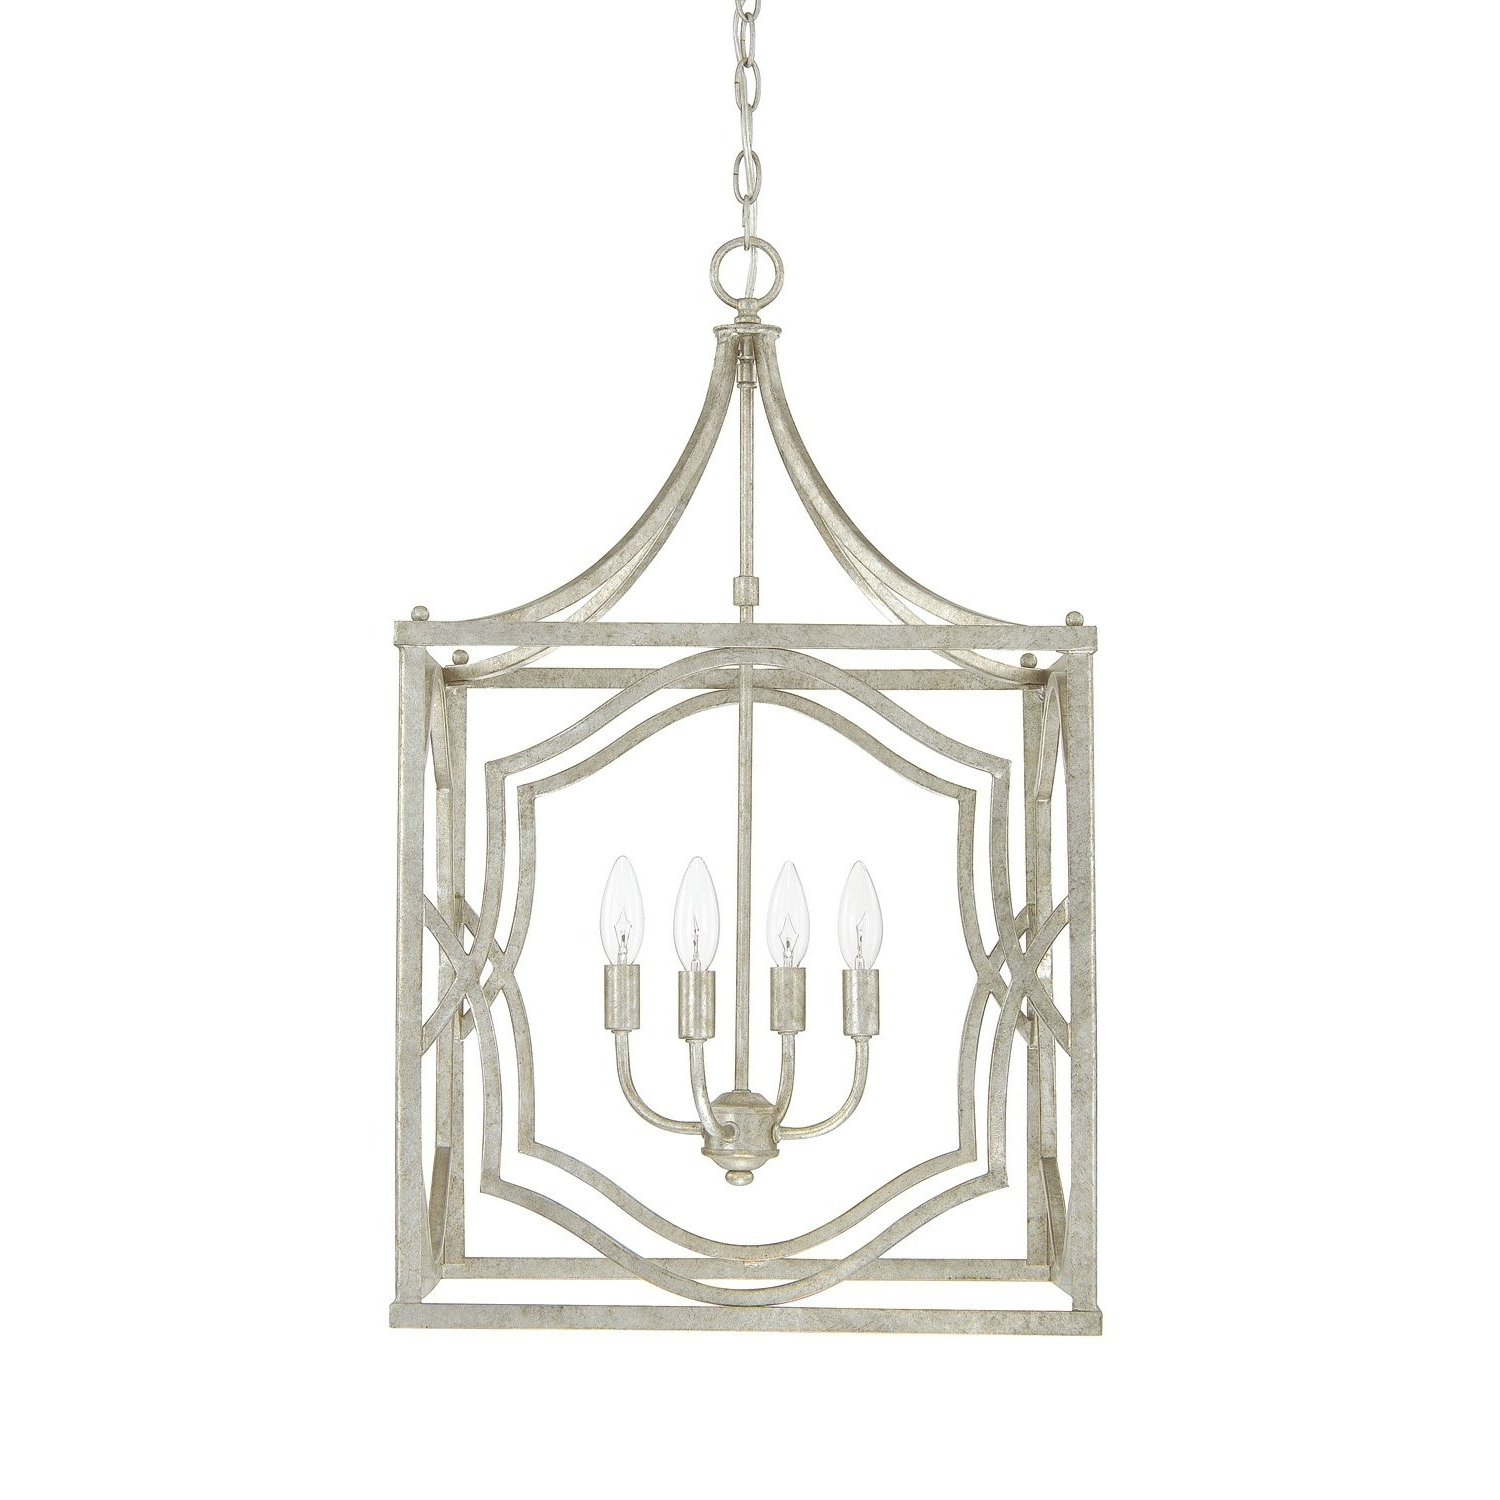 Oriana 4 Light Single Geometric Chandeliers Inside Most Current Blakely 4 Light Antique Silver Foyer Fixture – Antique (Gallery 9 of 20)